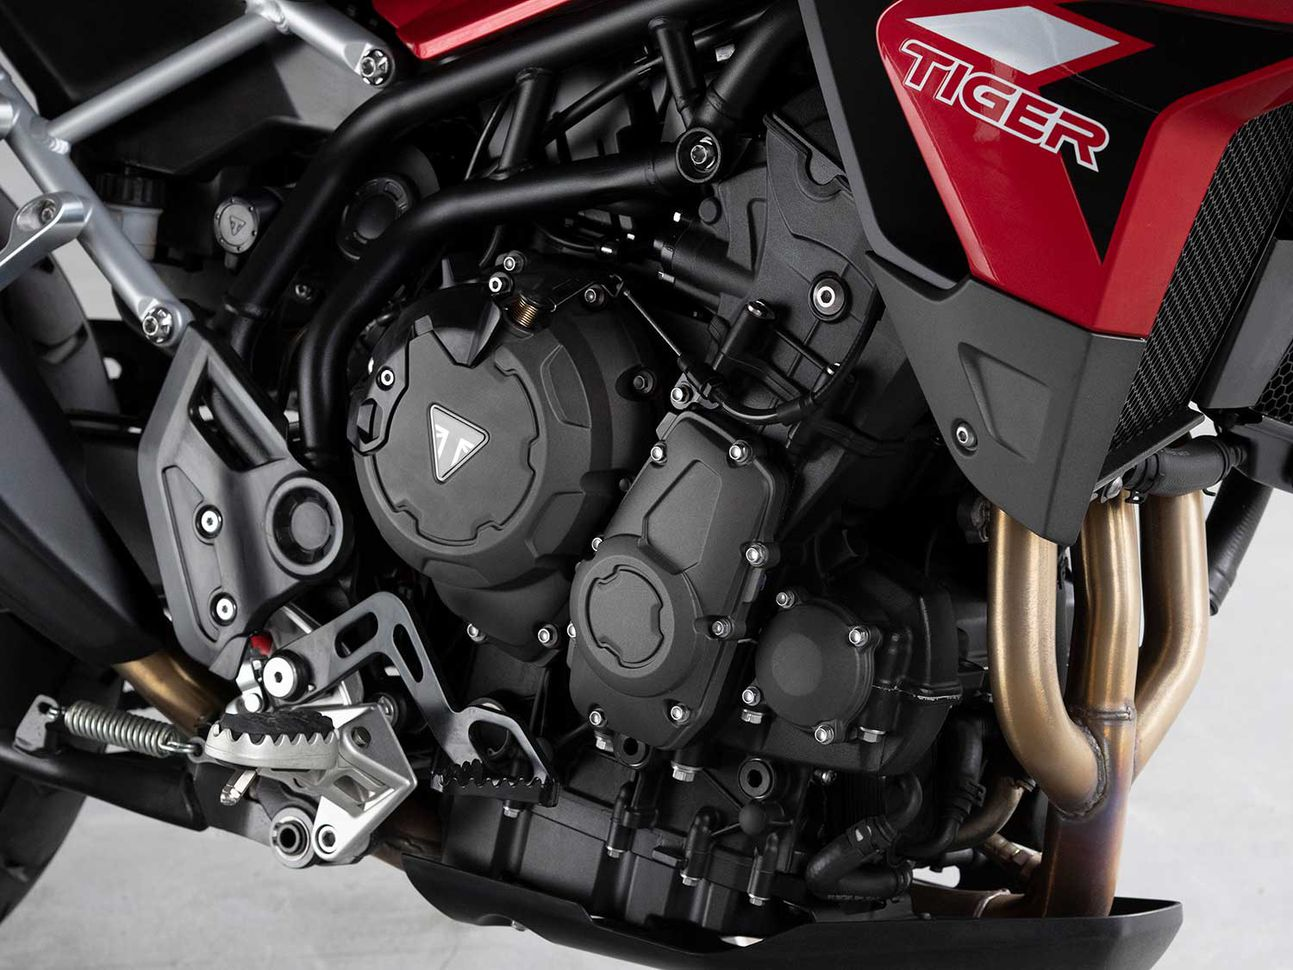 The Tiger 900 is powered by an 888cc inline-three that is more powerful than the 800 it replaces.